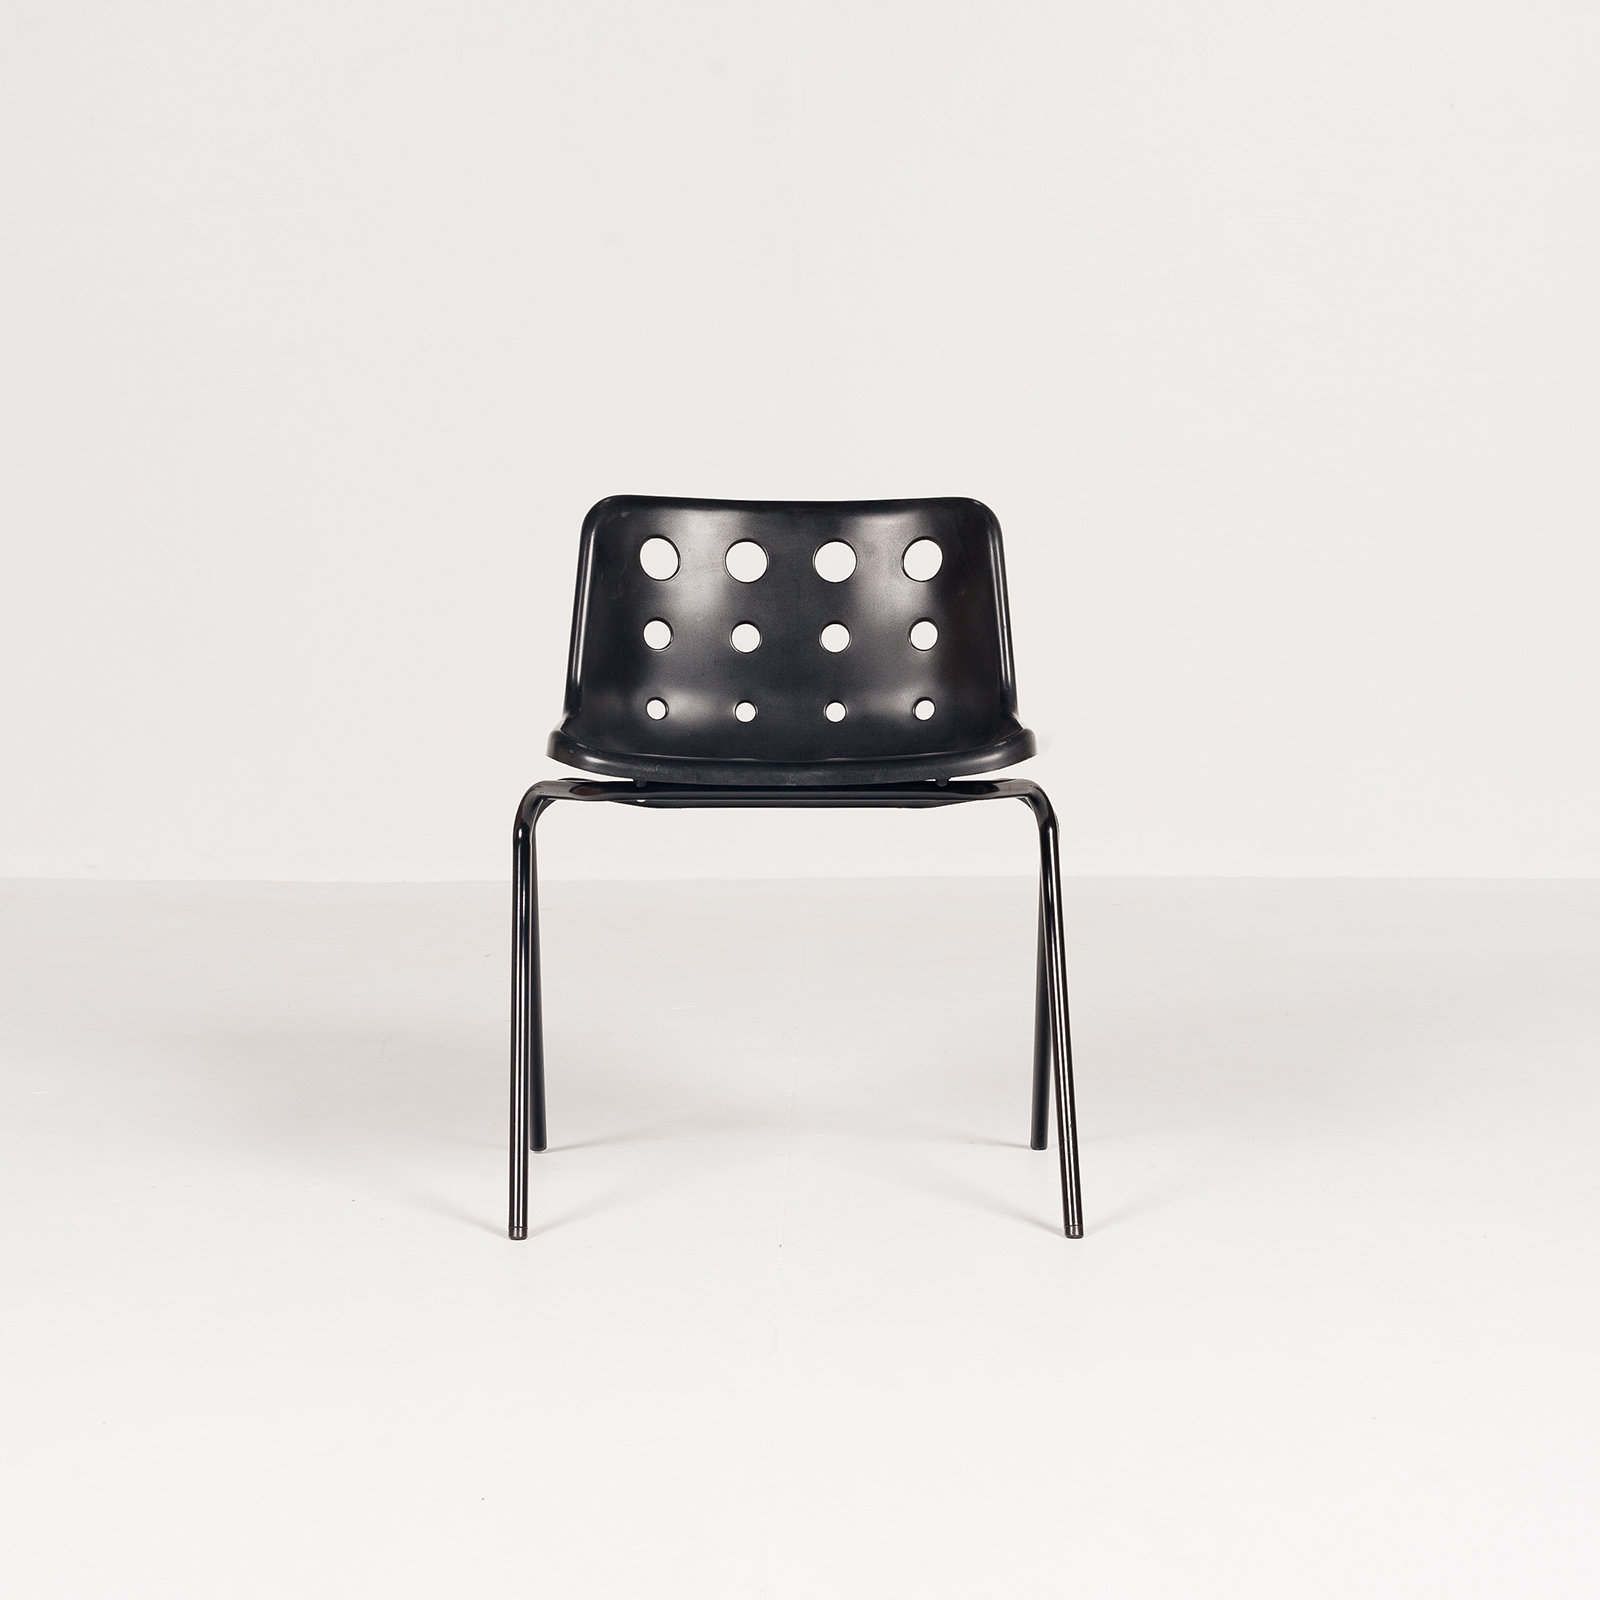 Polo Stacking Chair By Robin Day In Black Polyproylene, 1970s, England5879